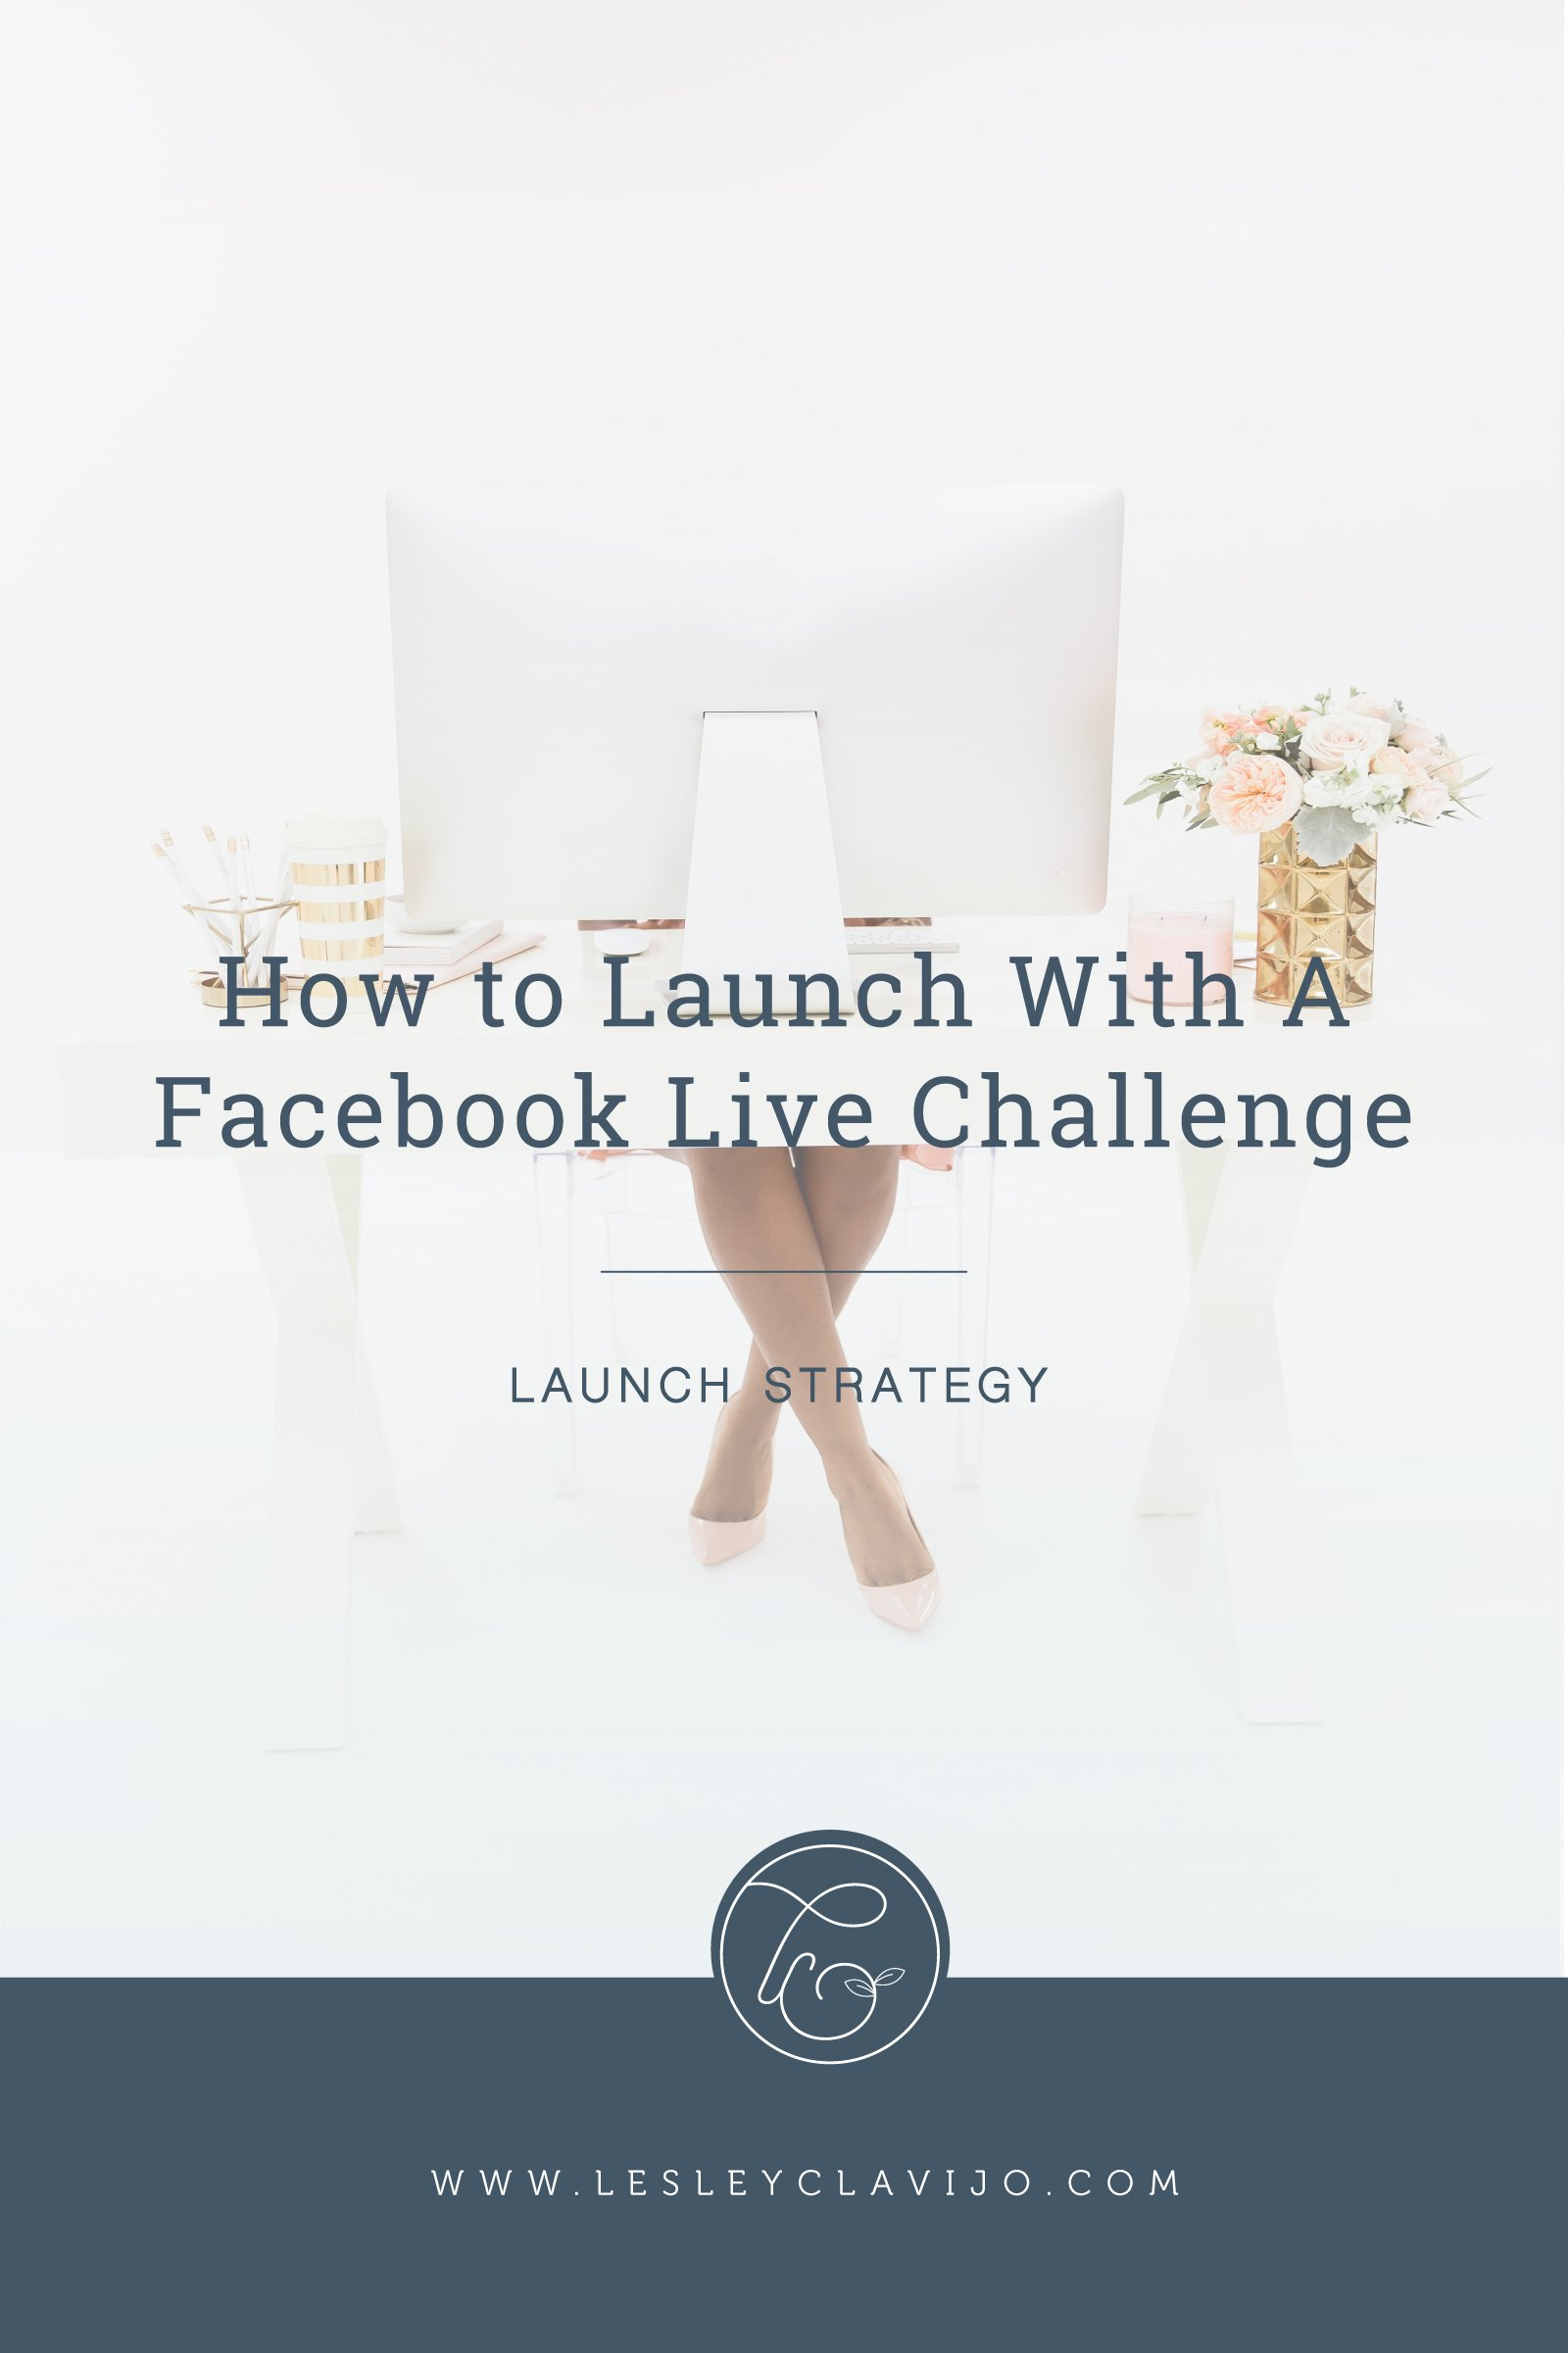 How to Launch with A Facebook Live Challenge